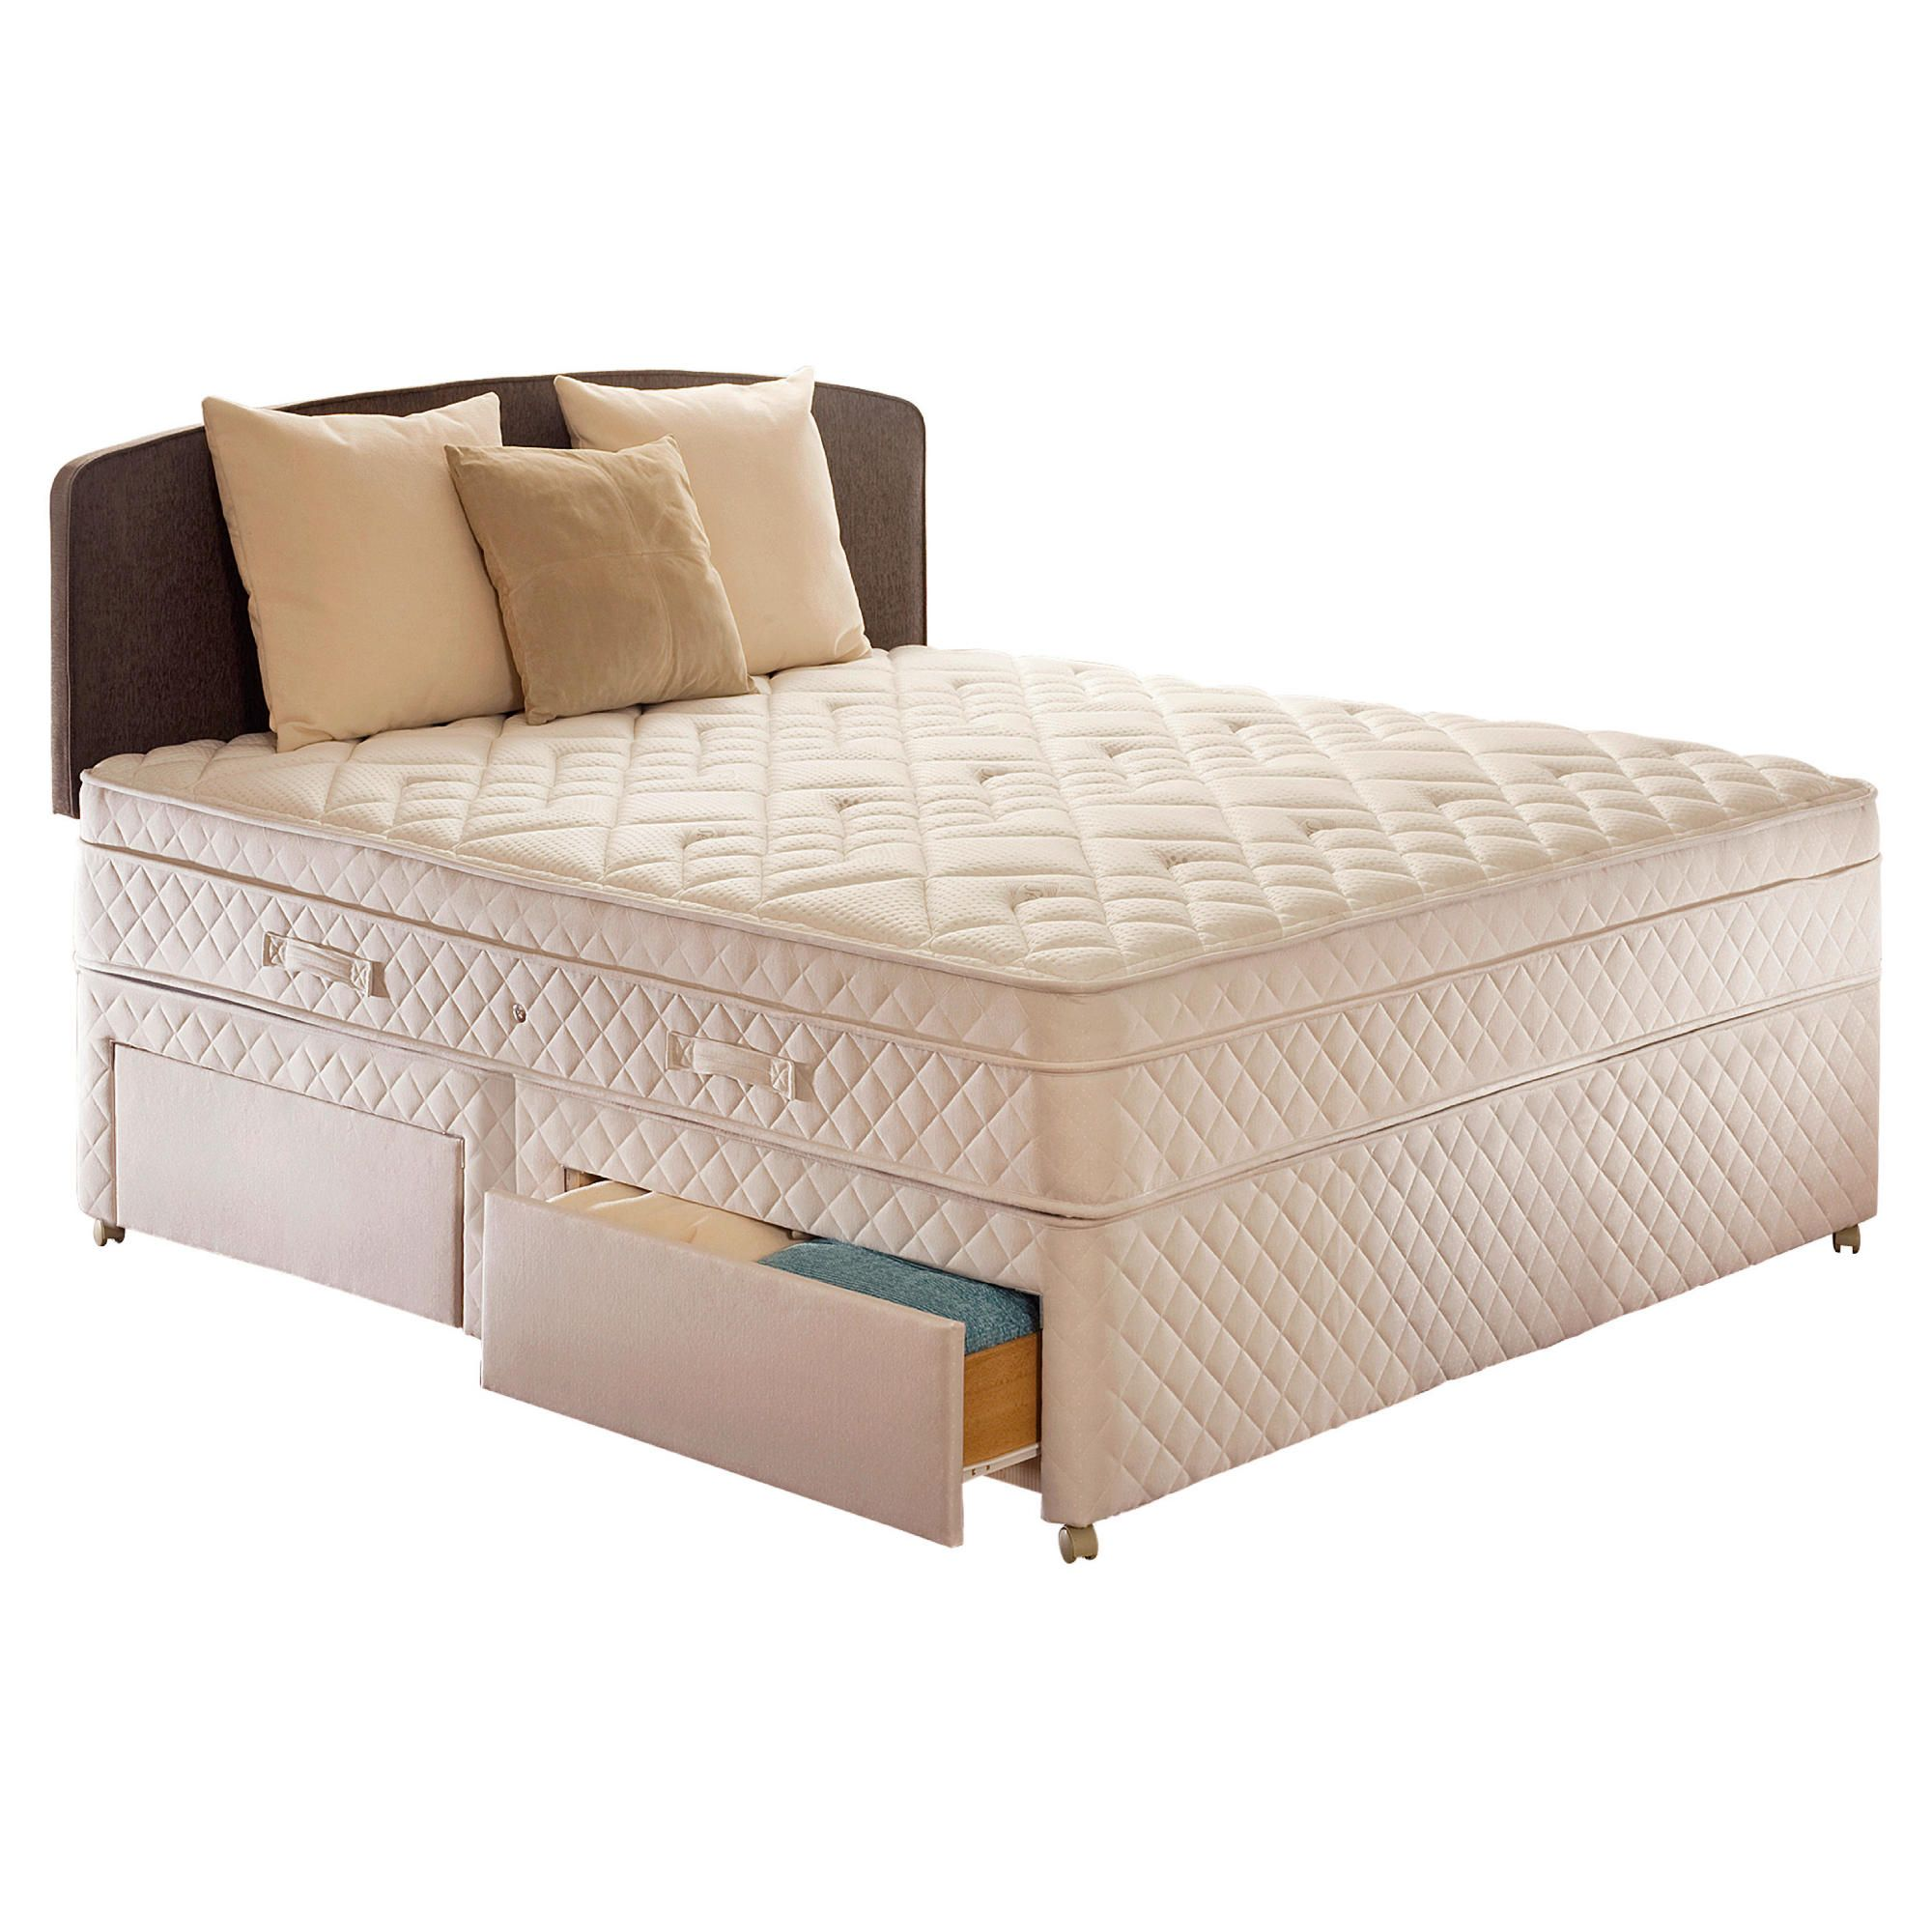 Sealy Diamond Excellence Double 4 Drawer Divan Bed at Tesco Direct